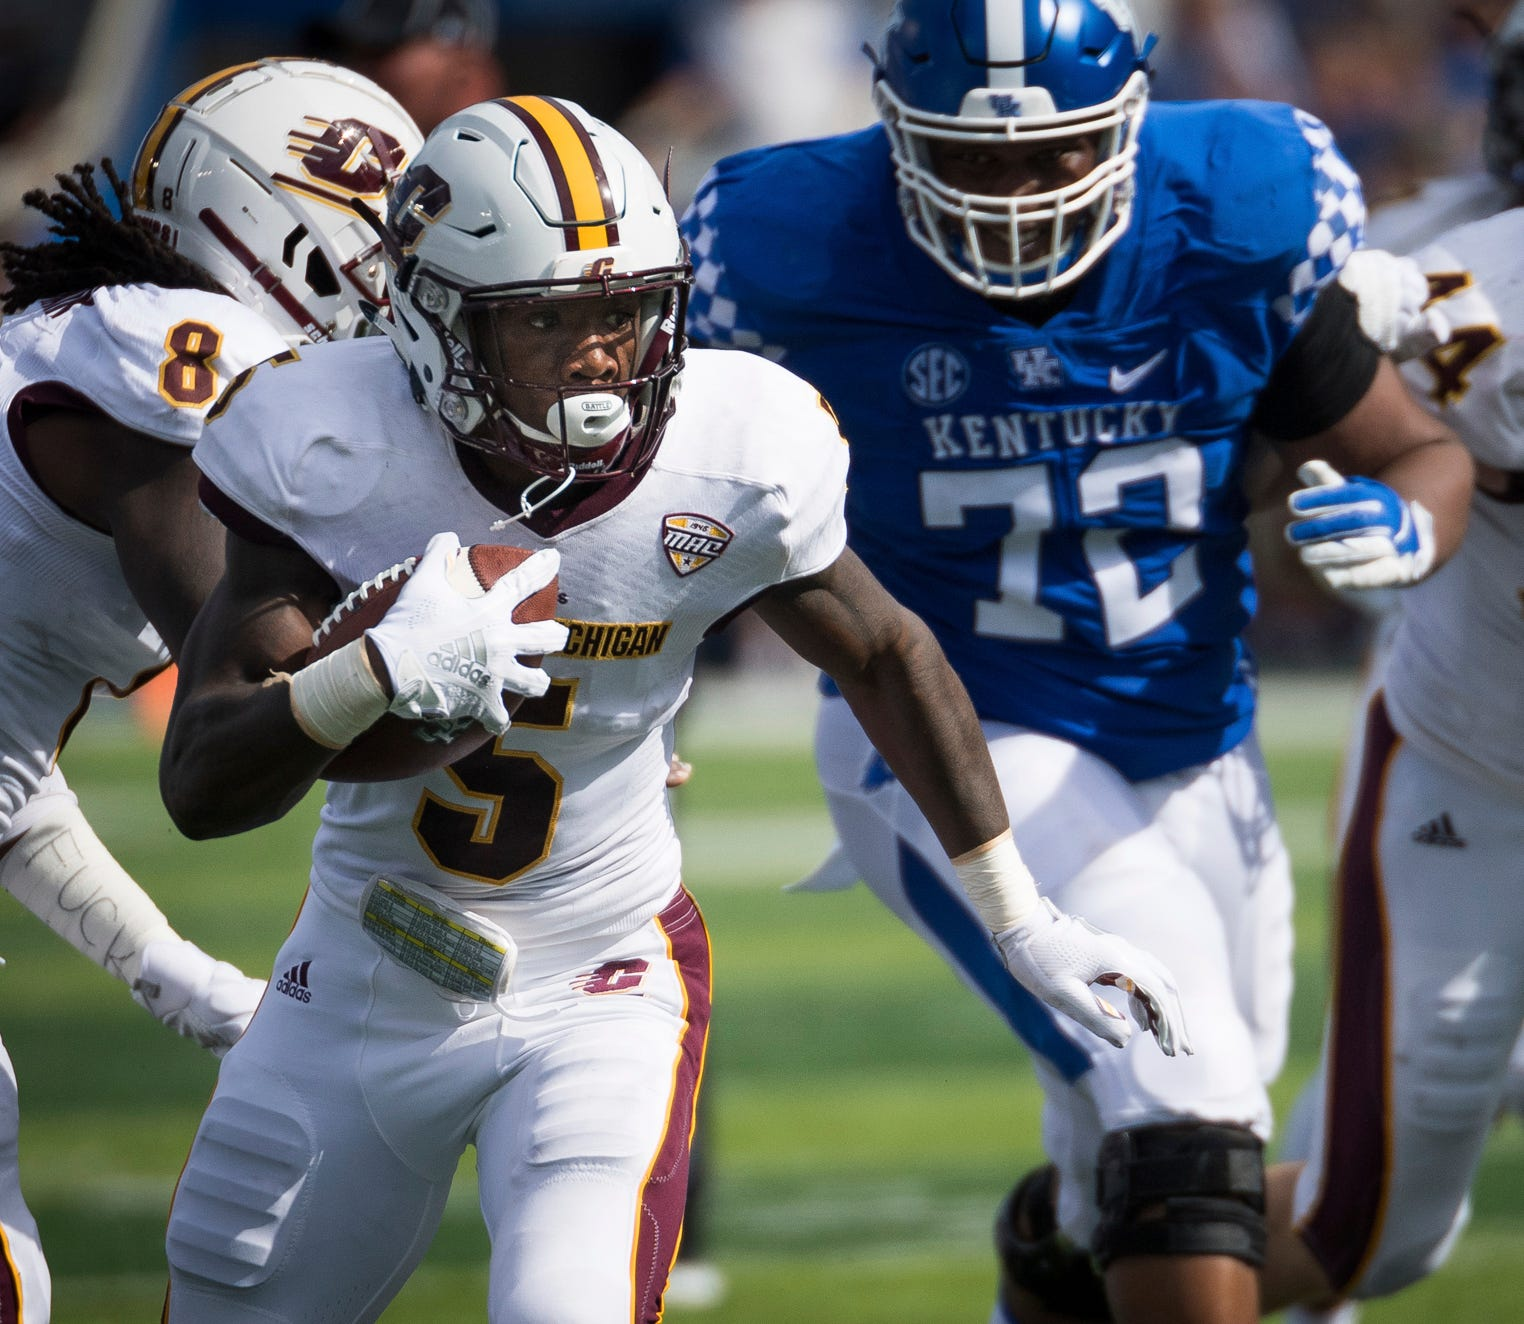 Central Michigan defensive back Devonni Reed (5) returns a recovered fumble for a touchdown against Kentucky in the first half of an NCAA college football game in Lexington, Ky., Saturday, Sept. 1, 2018.